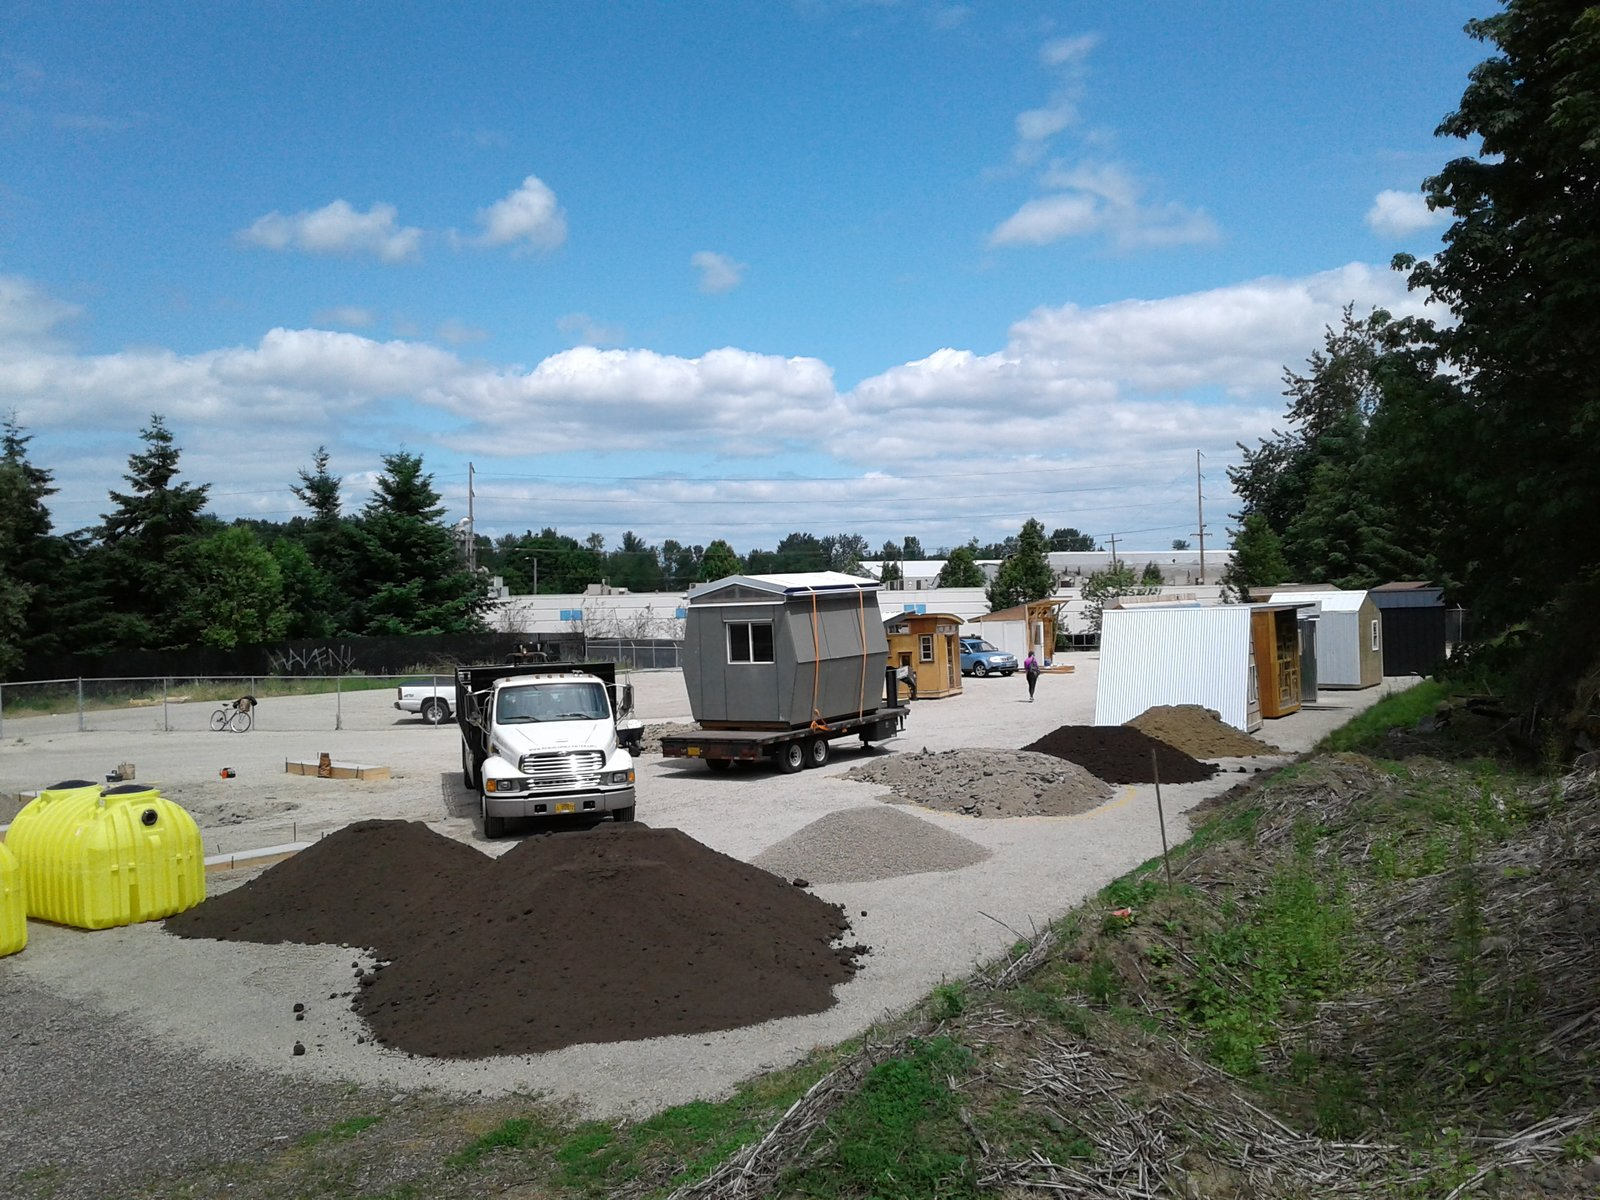 SRG POD being delivered to the Kenton Women's Village. How Tiny Pods Are the Future For Portland's Houseless Community - Photo 5 of 8